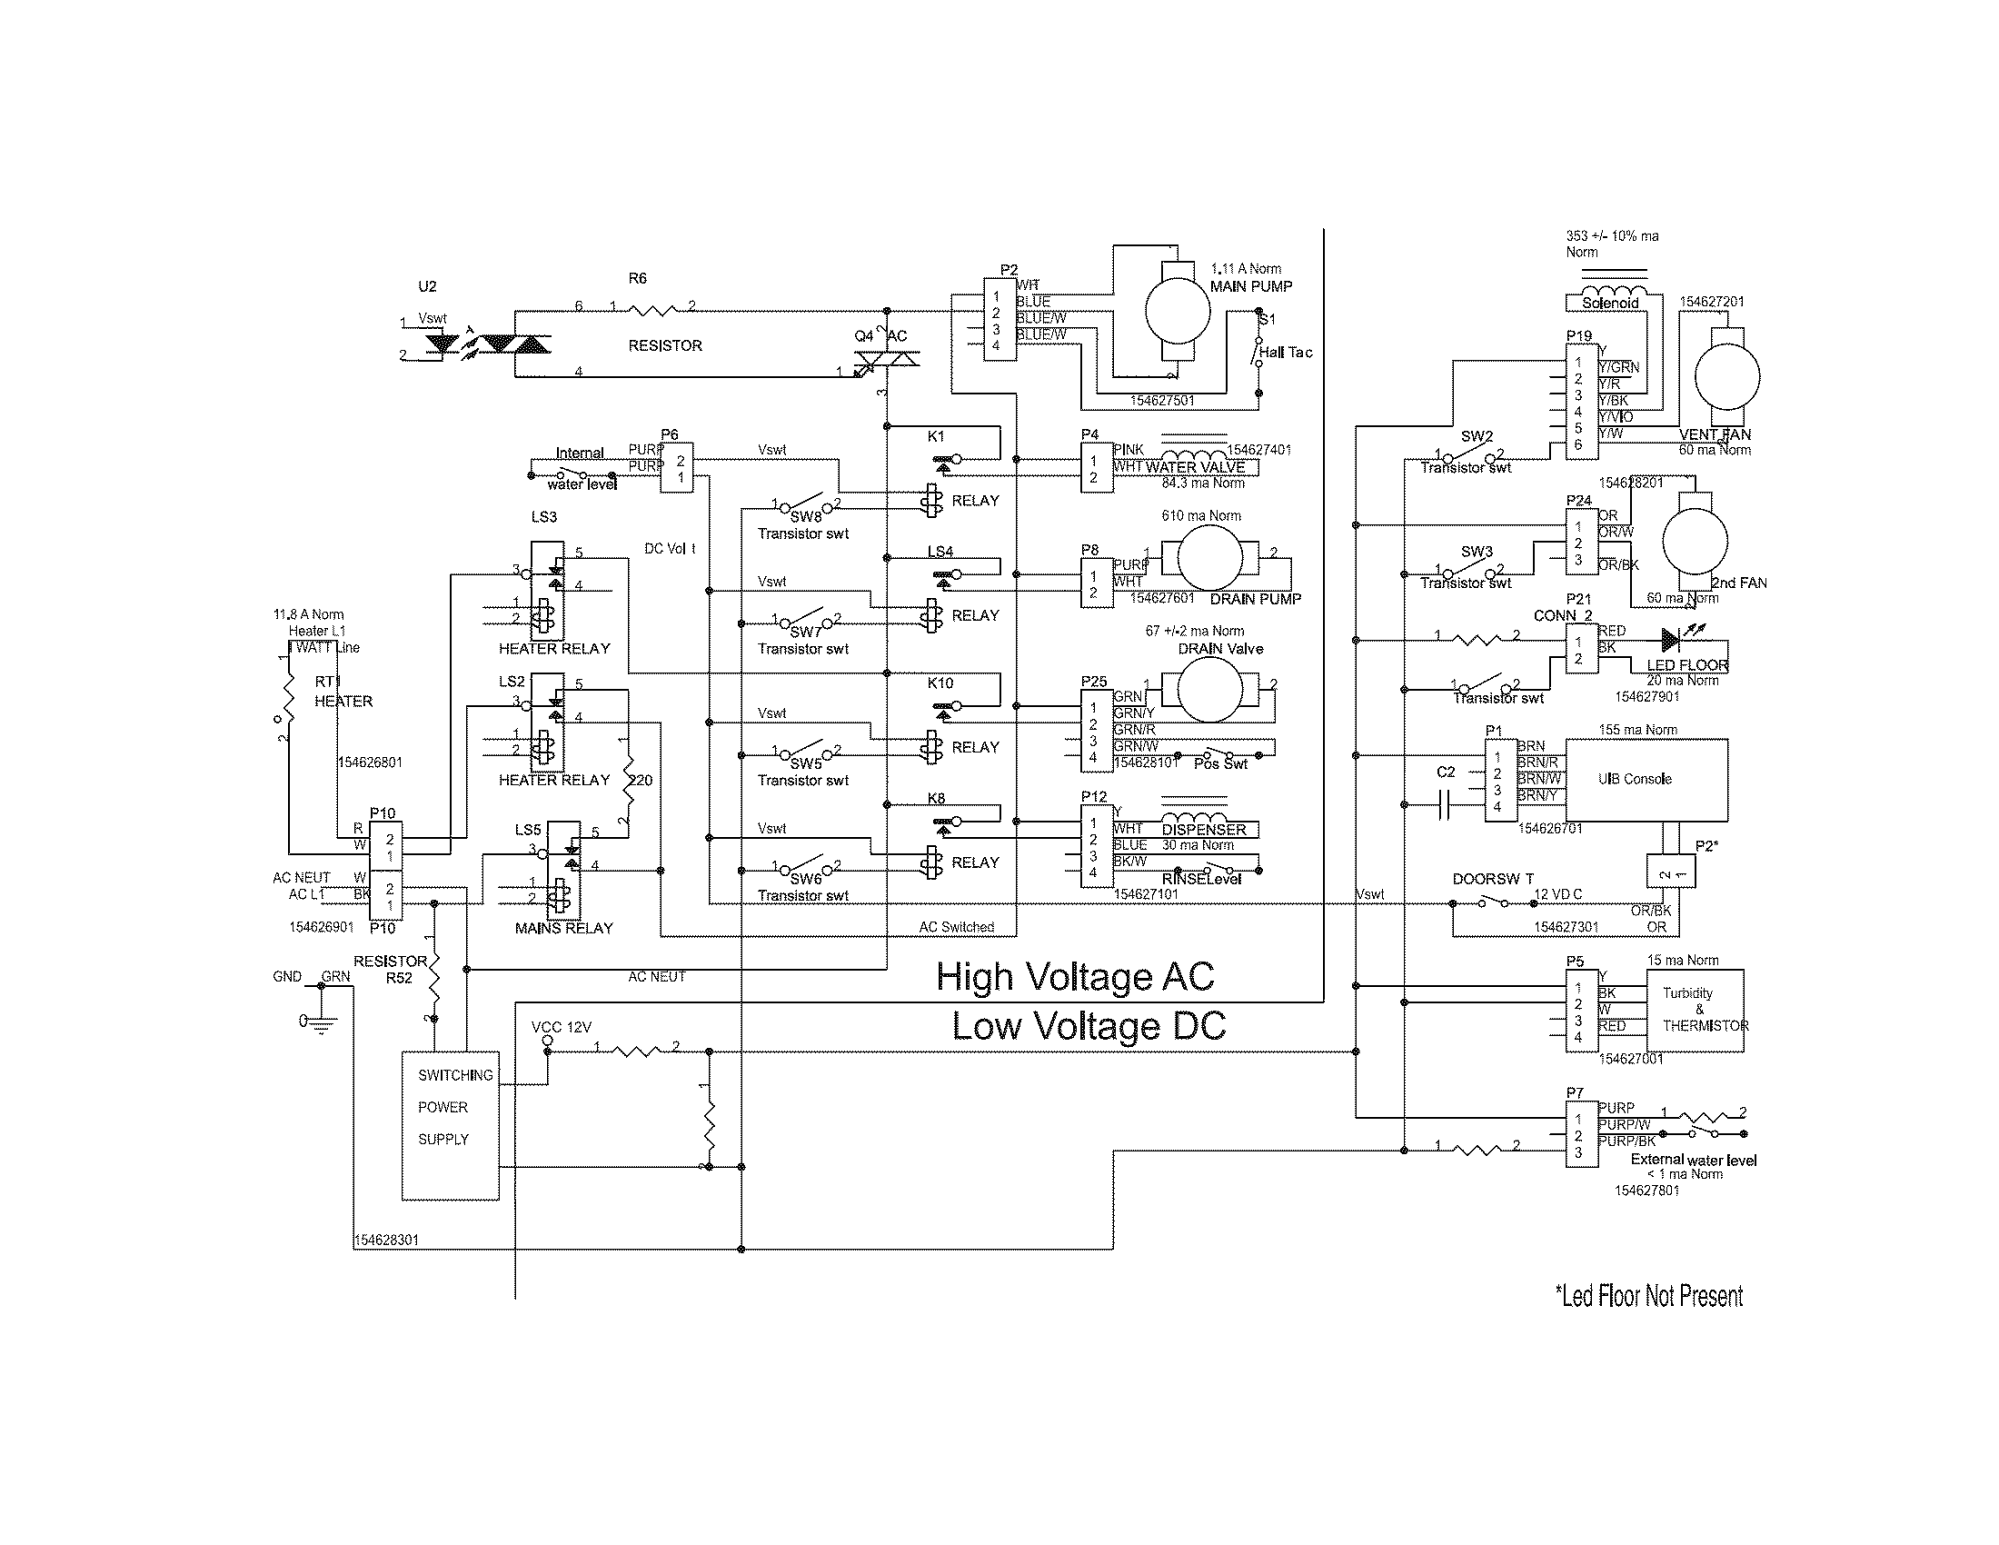 hight resolution of electrolux dryer wiring schematic wiring libraryelectrolux dryer wiring schematic